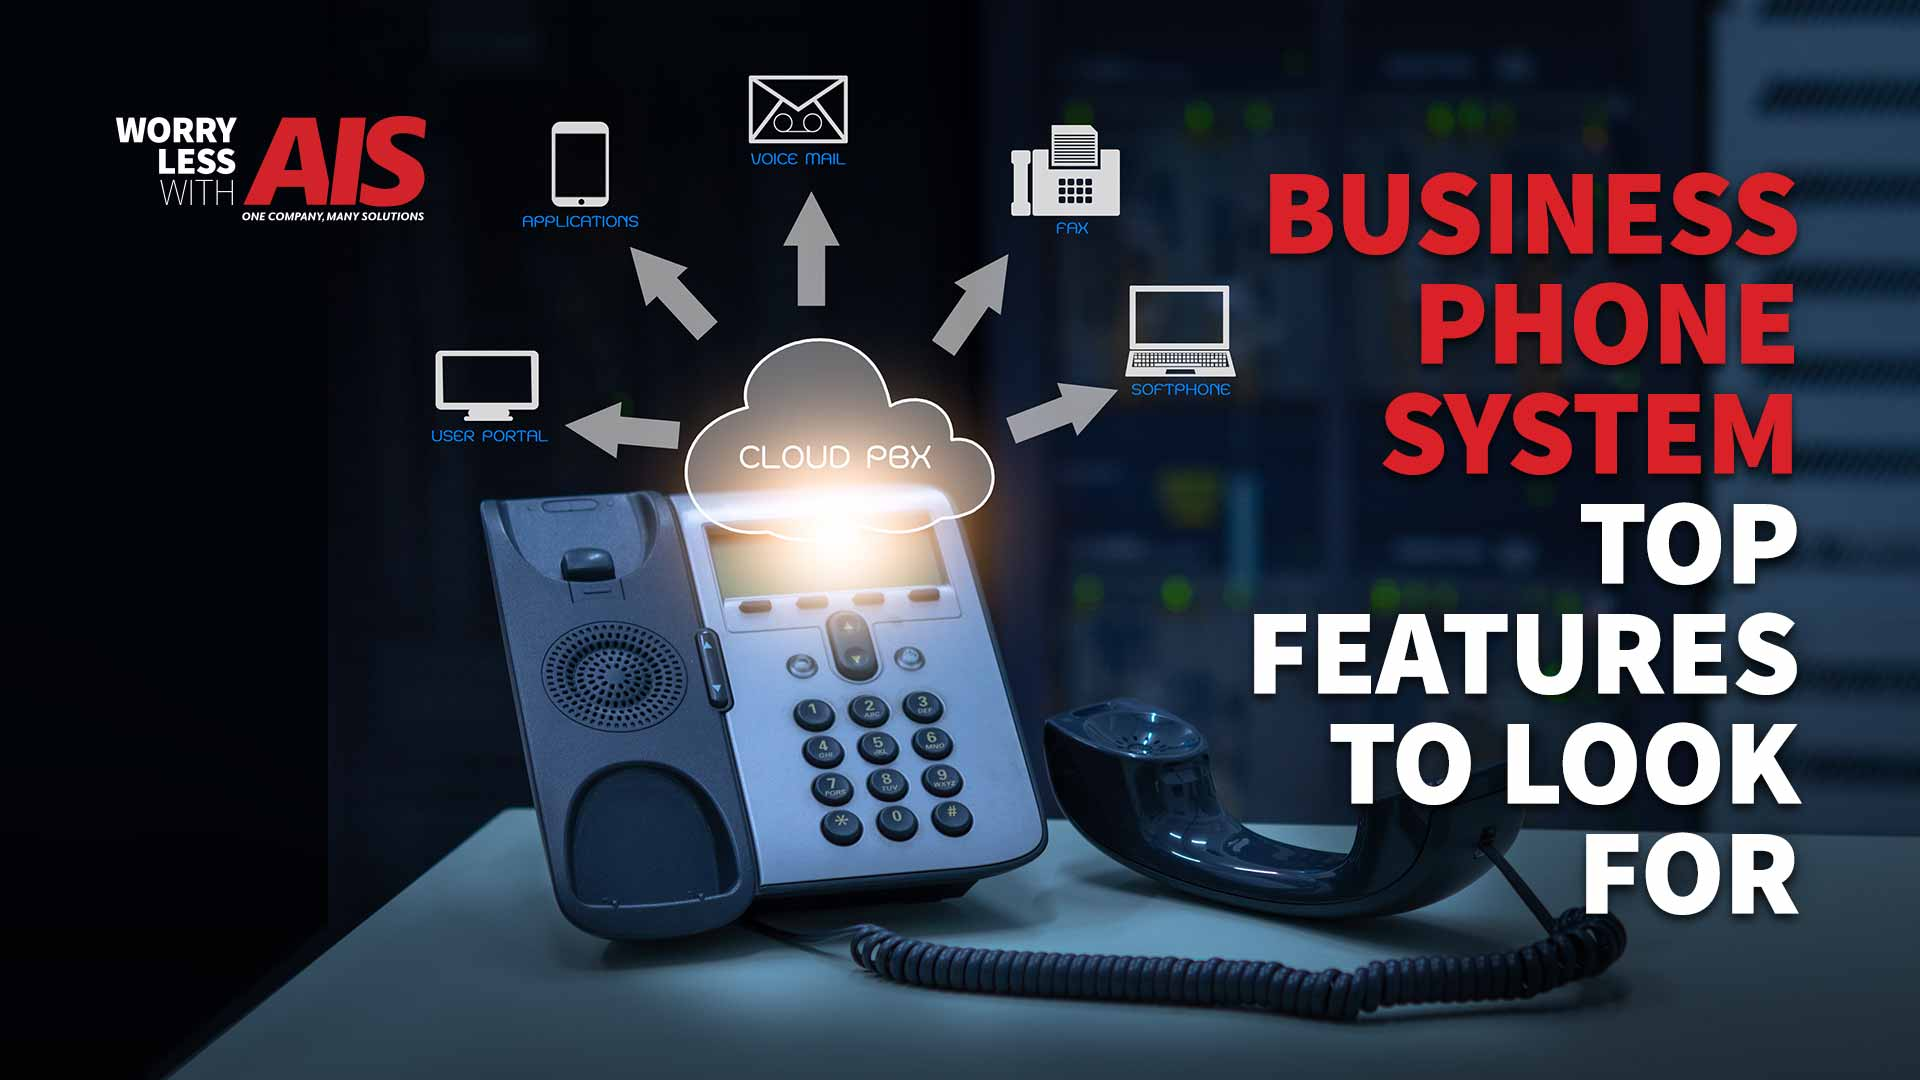 office-phone-system-top-5-features-desk-phone